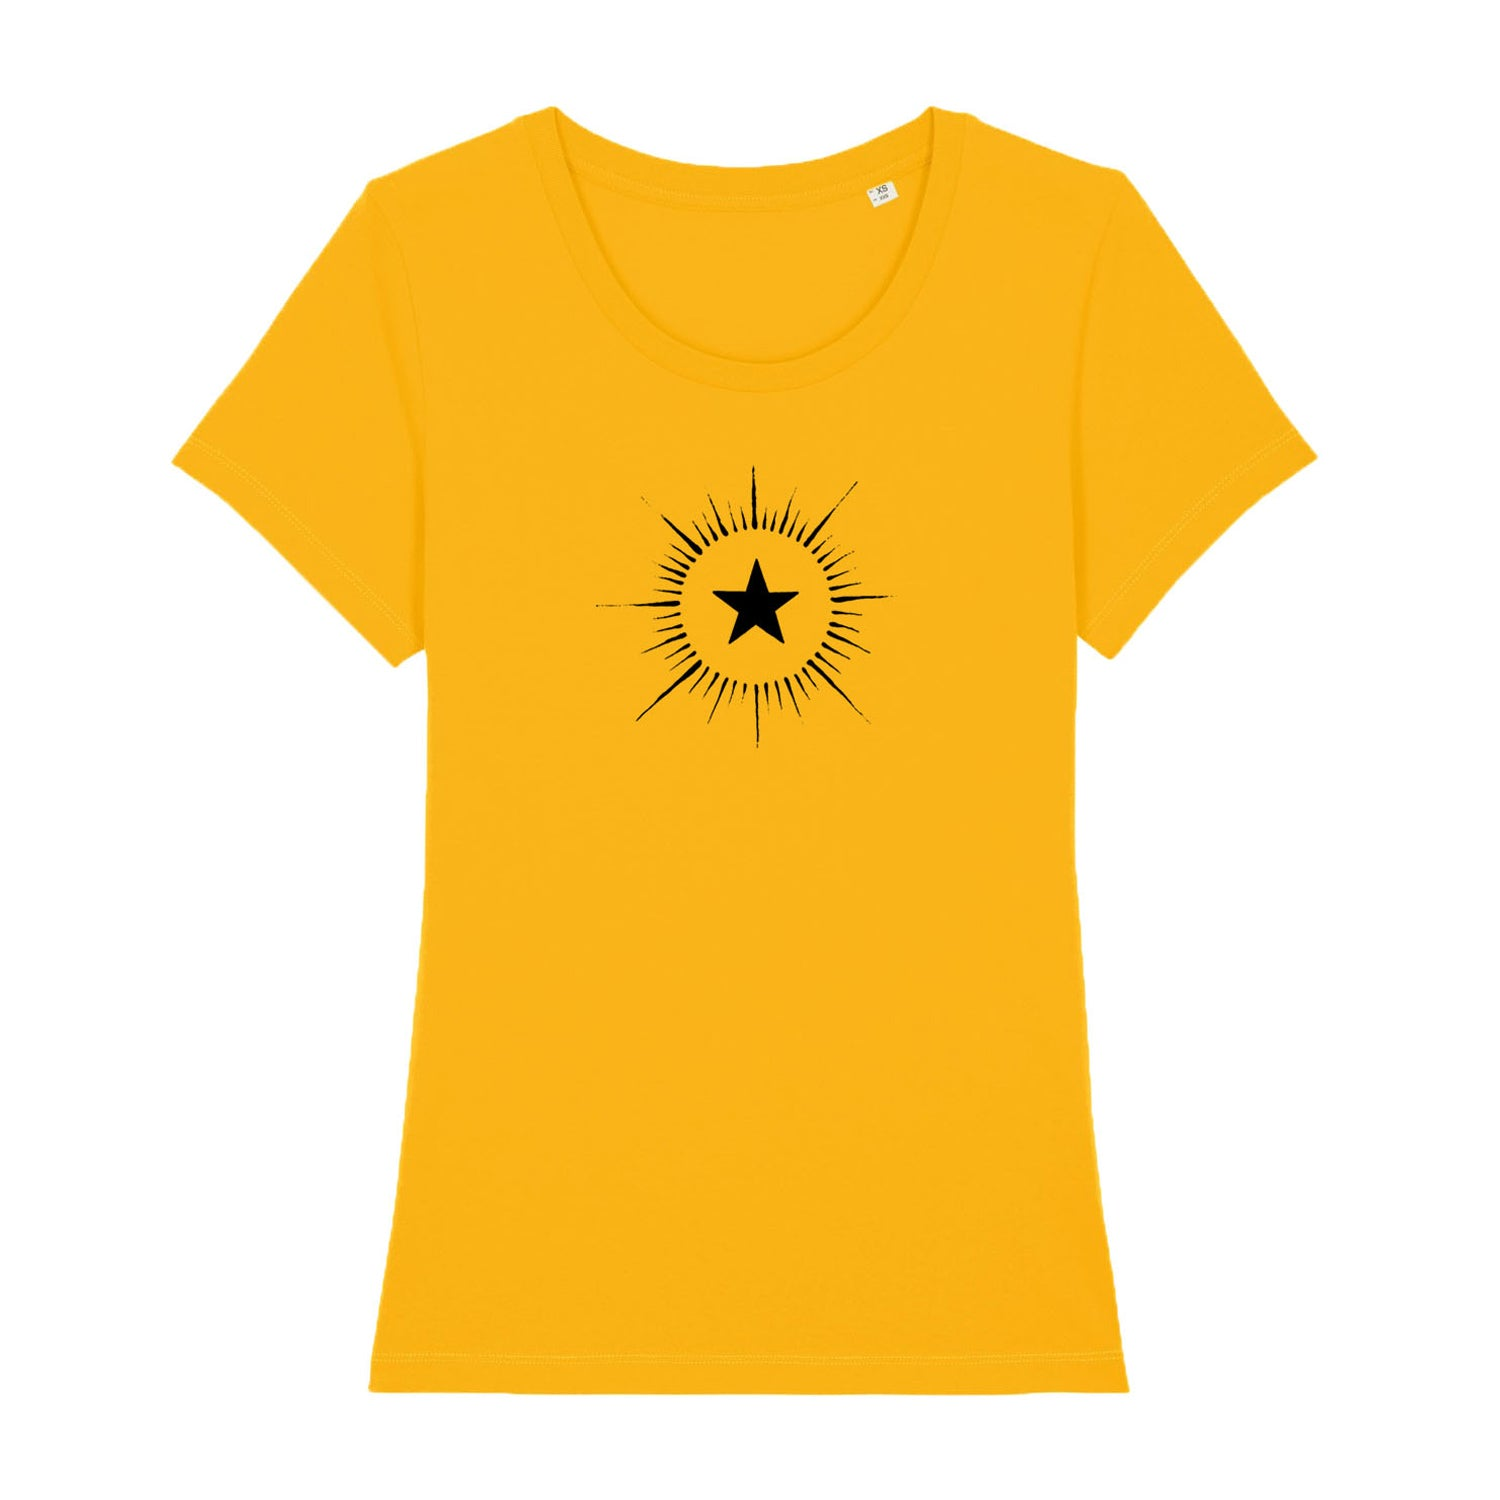 yellow women's t shirt with vintage star design